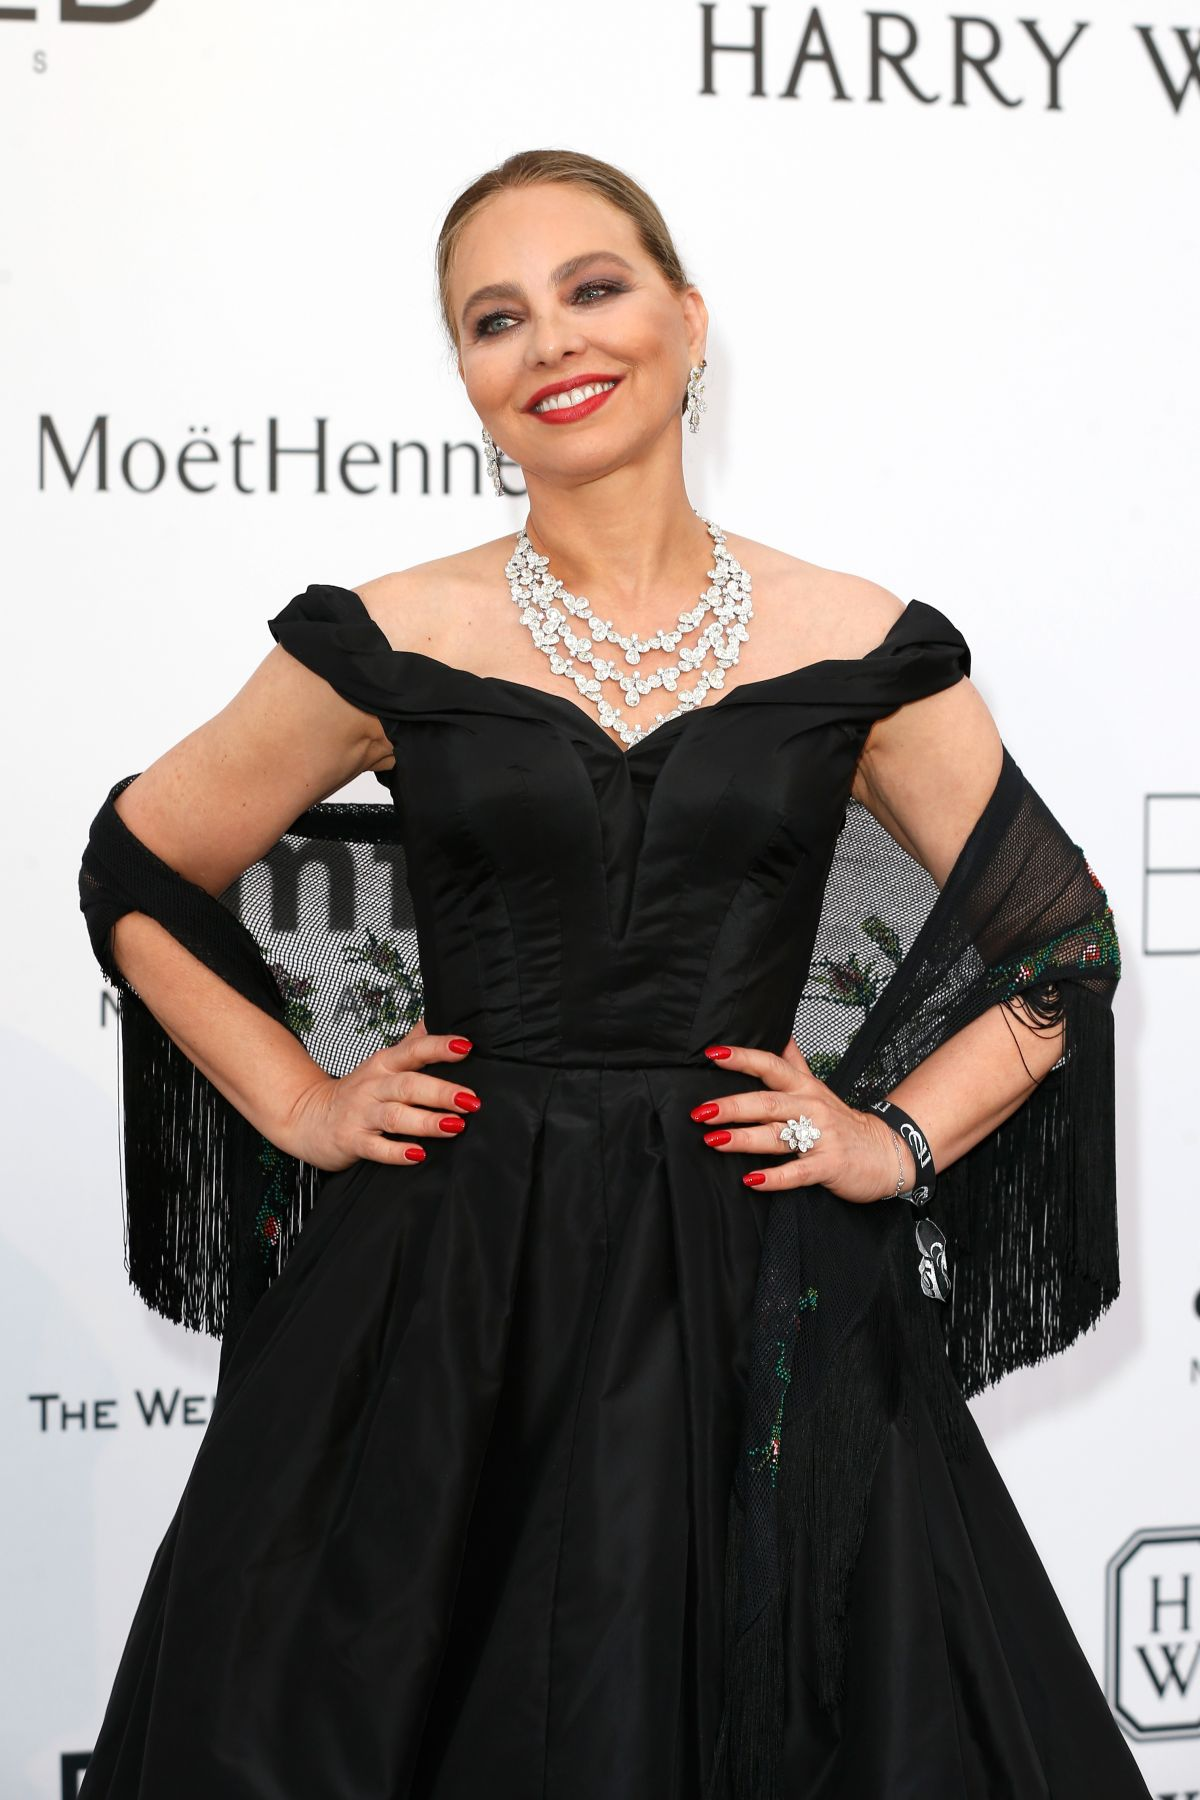 ORNELLA MUTI at Amfar's 2015 Cinema Against Aids Gala in Cap d'Antibes